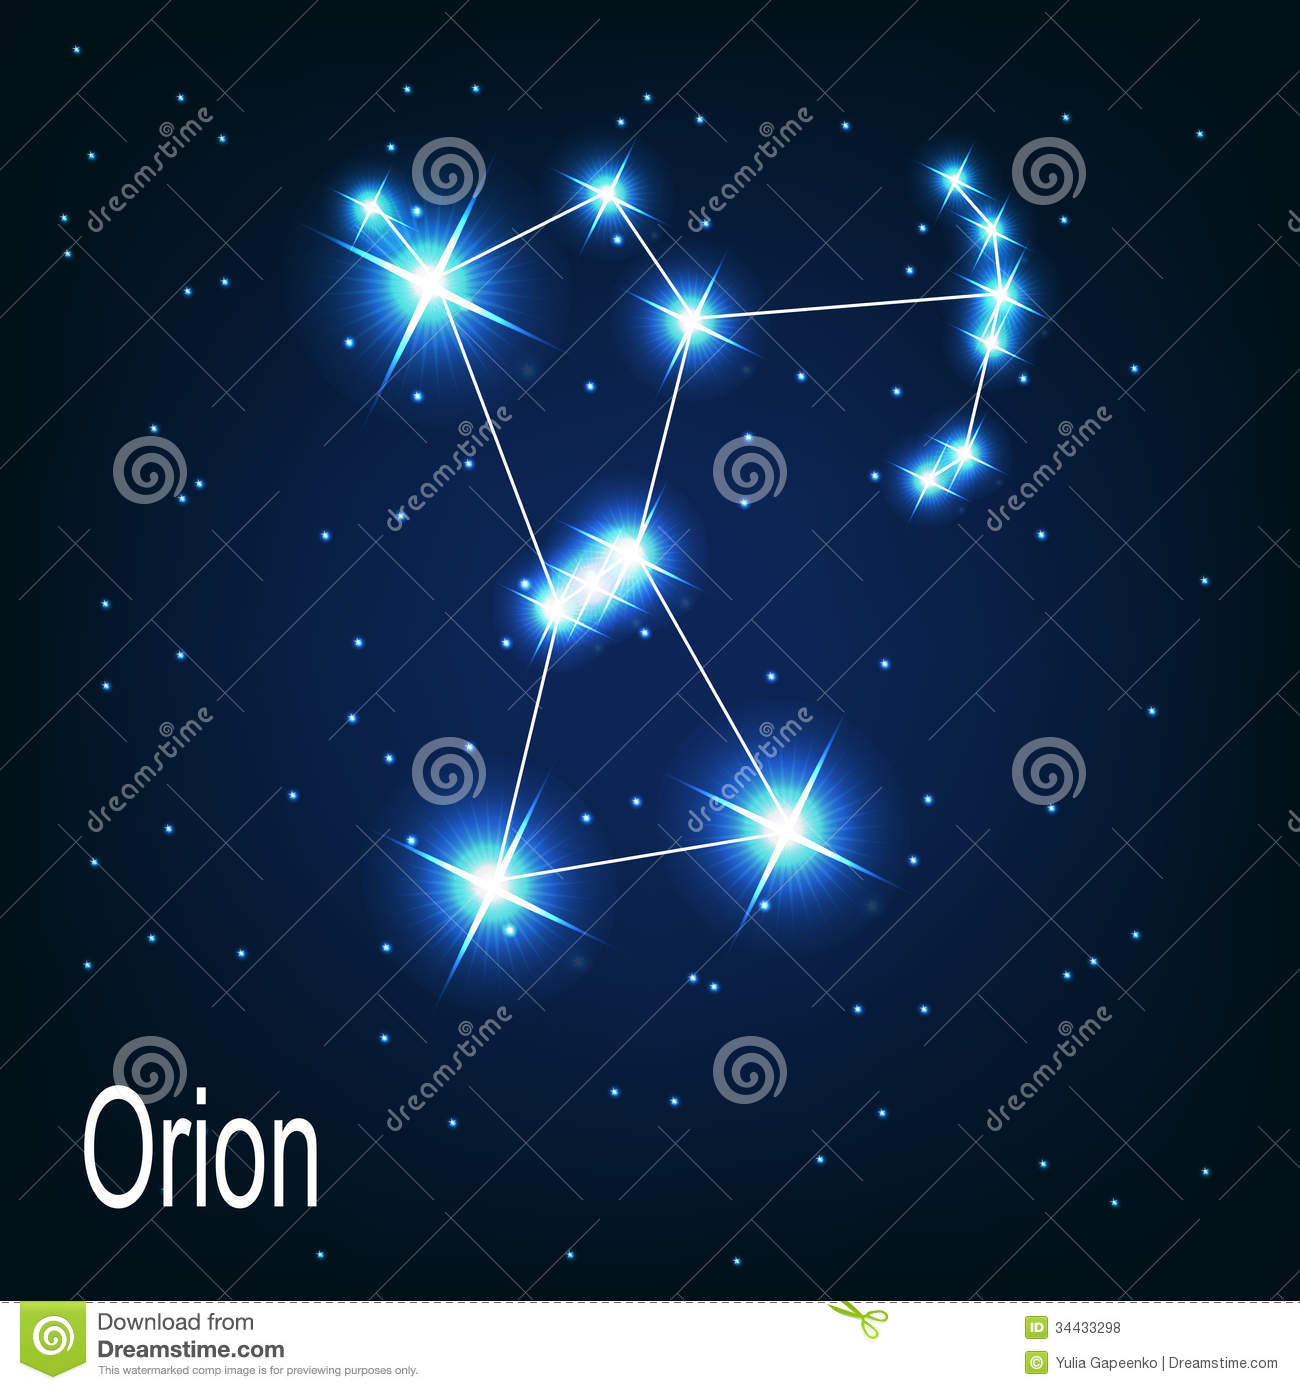 The Constellation Orion Star In The Night Sky. Royalty Free Stock Photos - Image: 34433298